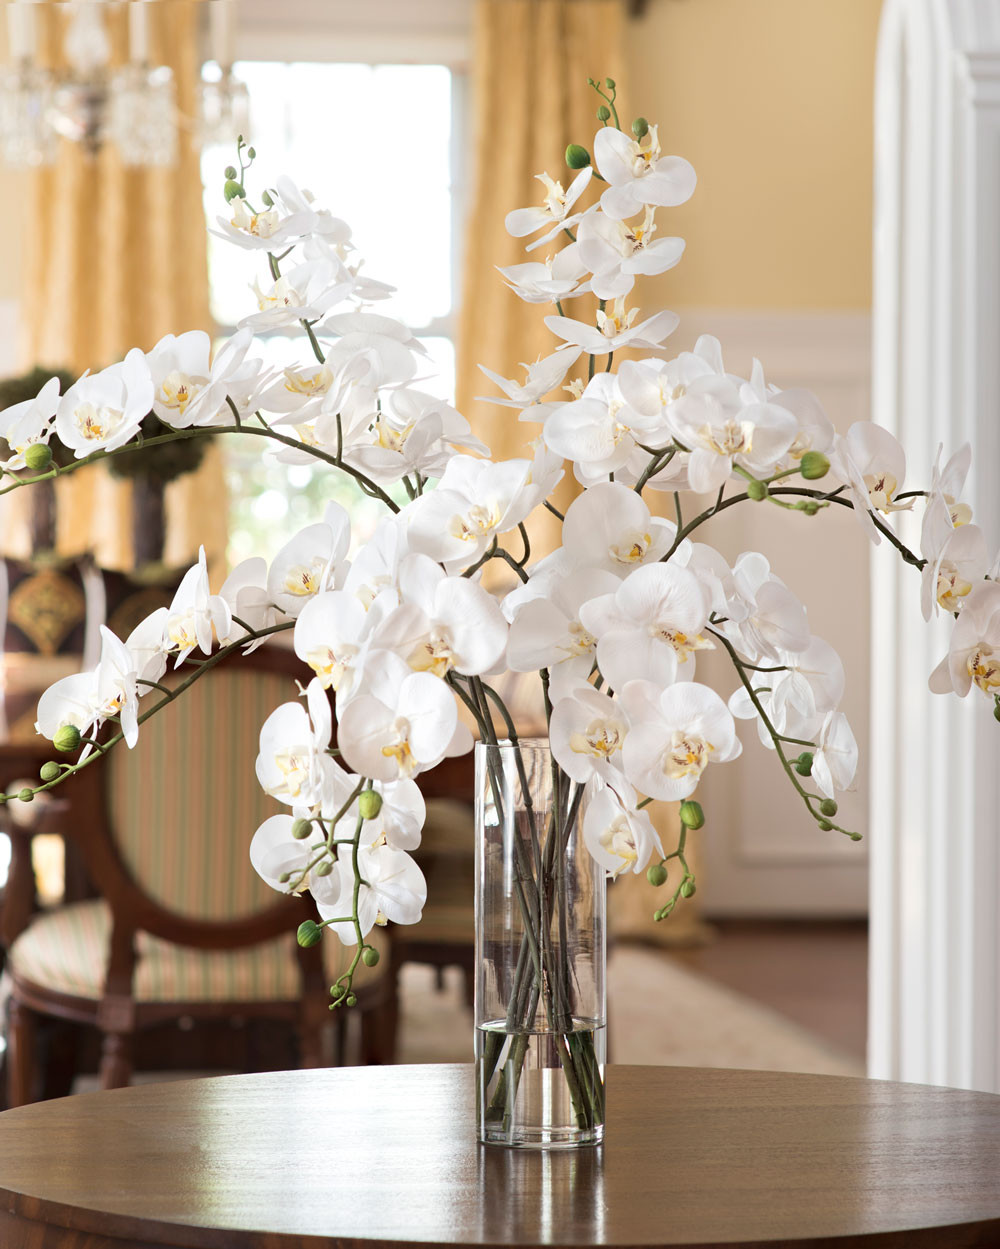 Big Vase Floral Arrangements Of Big Vase with Artificial Flowers Sevenstonesinc Com within Stylish Grand Phalaenopsis orchid Artificial Flower Design at